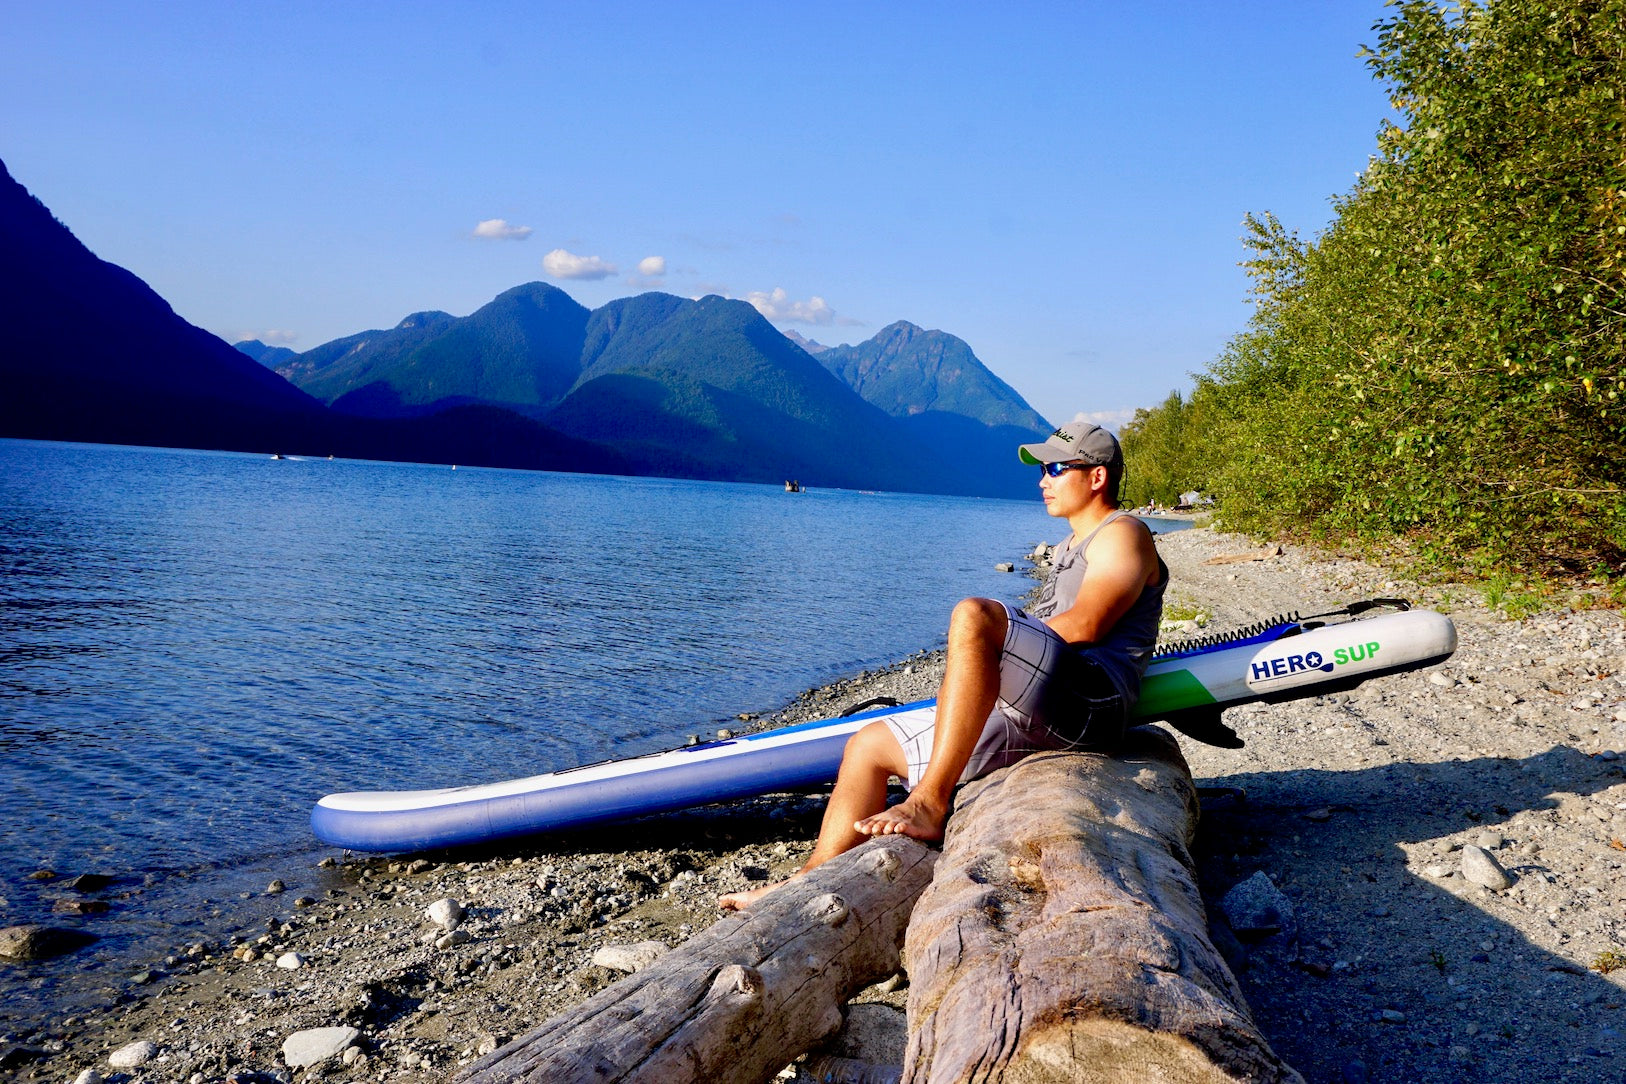 Hero SUP stand up paddle board paddle boarding for mental health